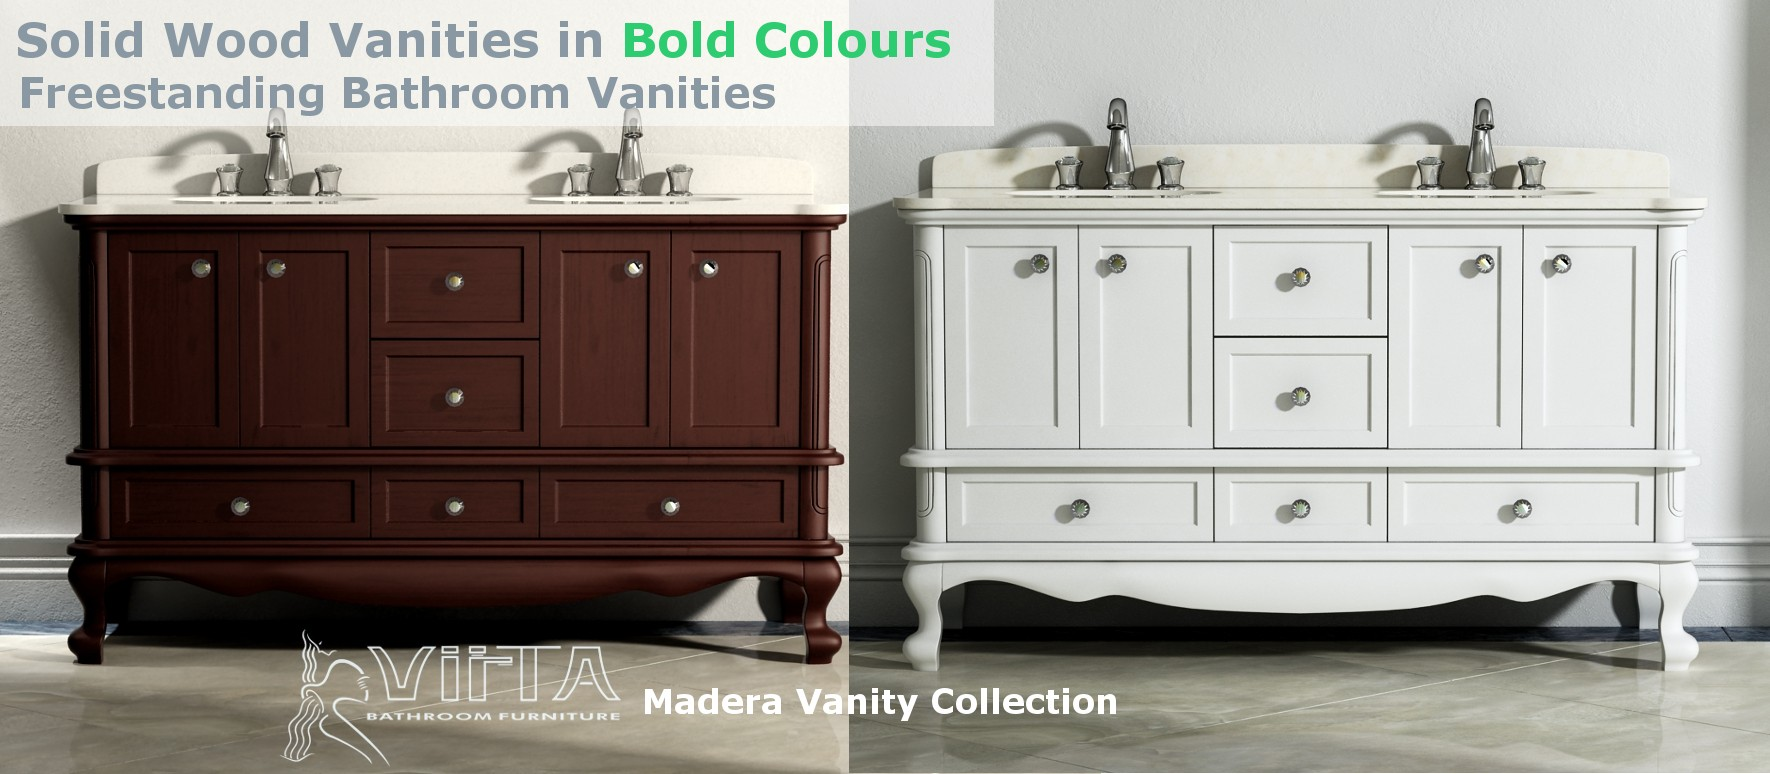 Solid Wood Vanities in Bold Colours